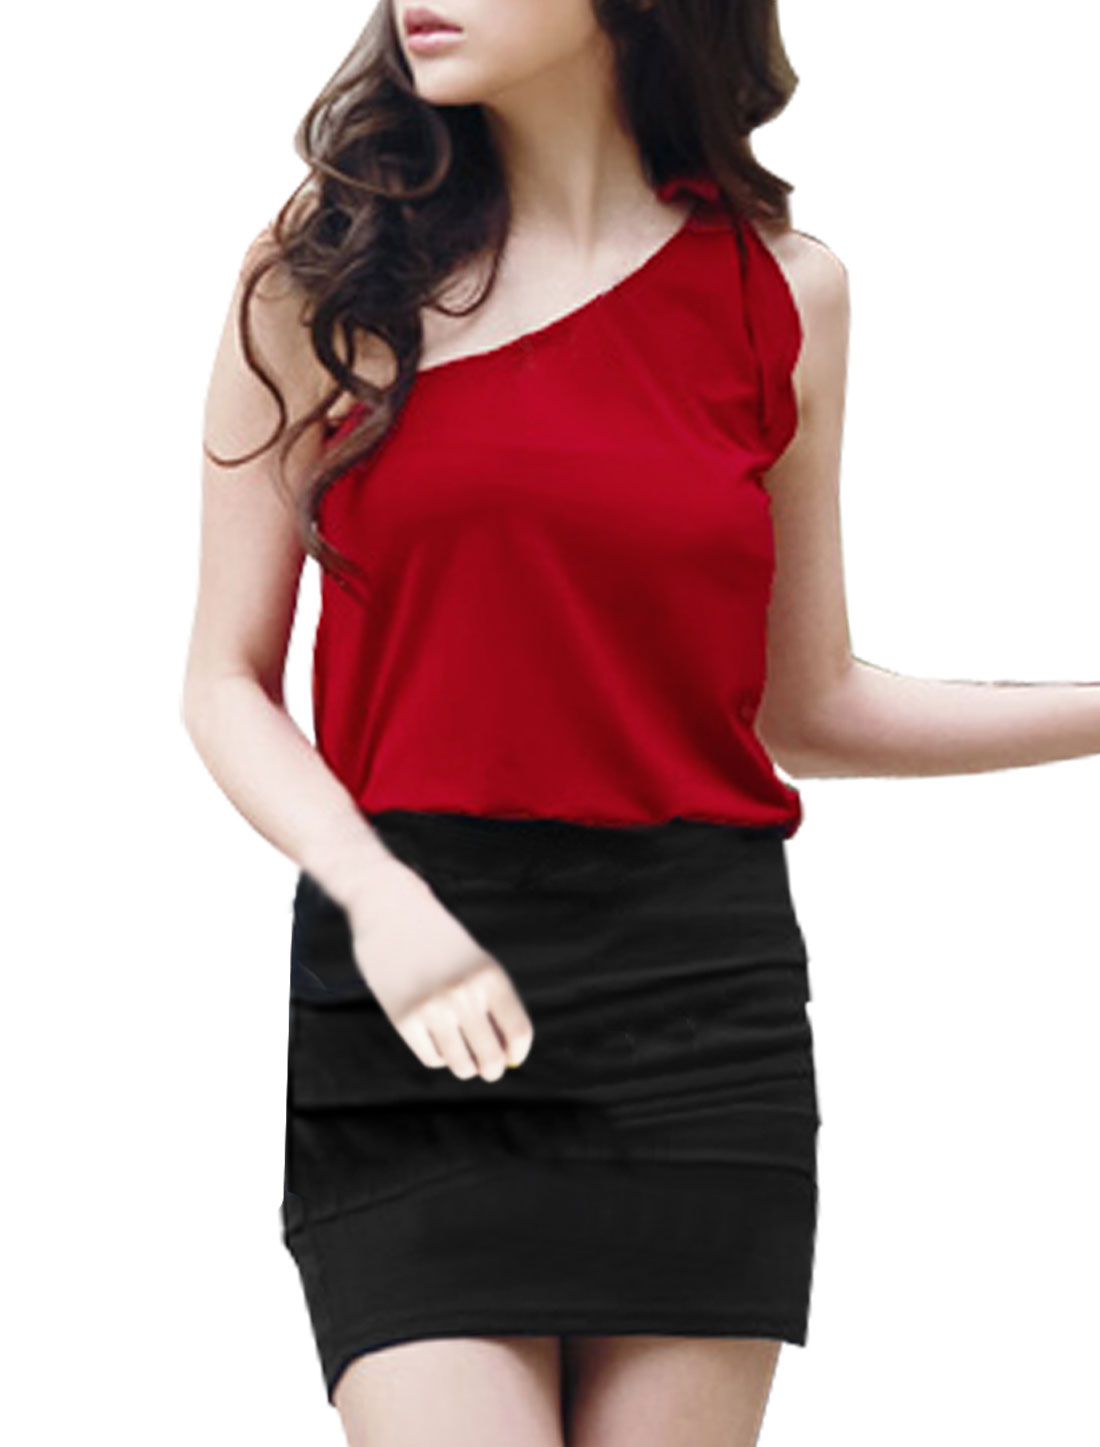 Ladies Single Shoulder Red Black Stretchy Dress XS